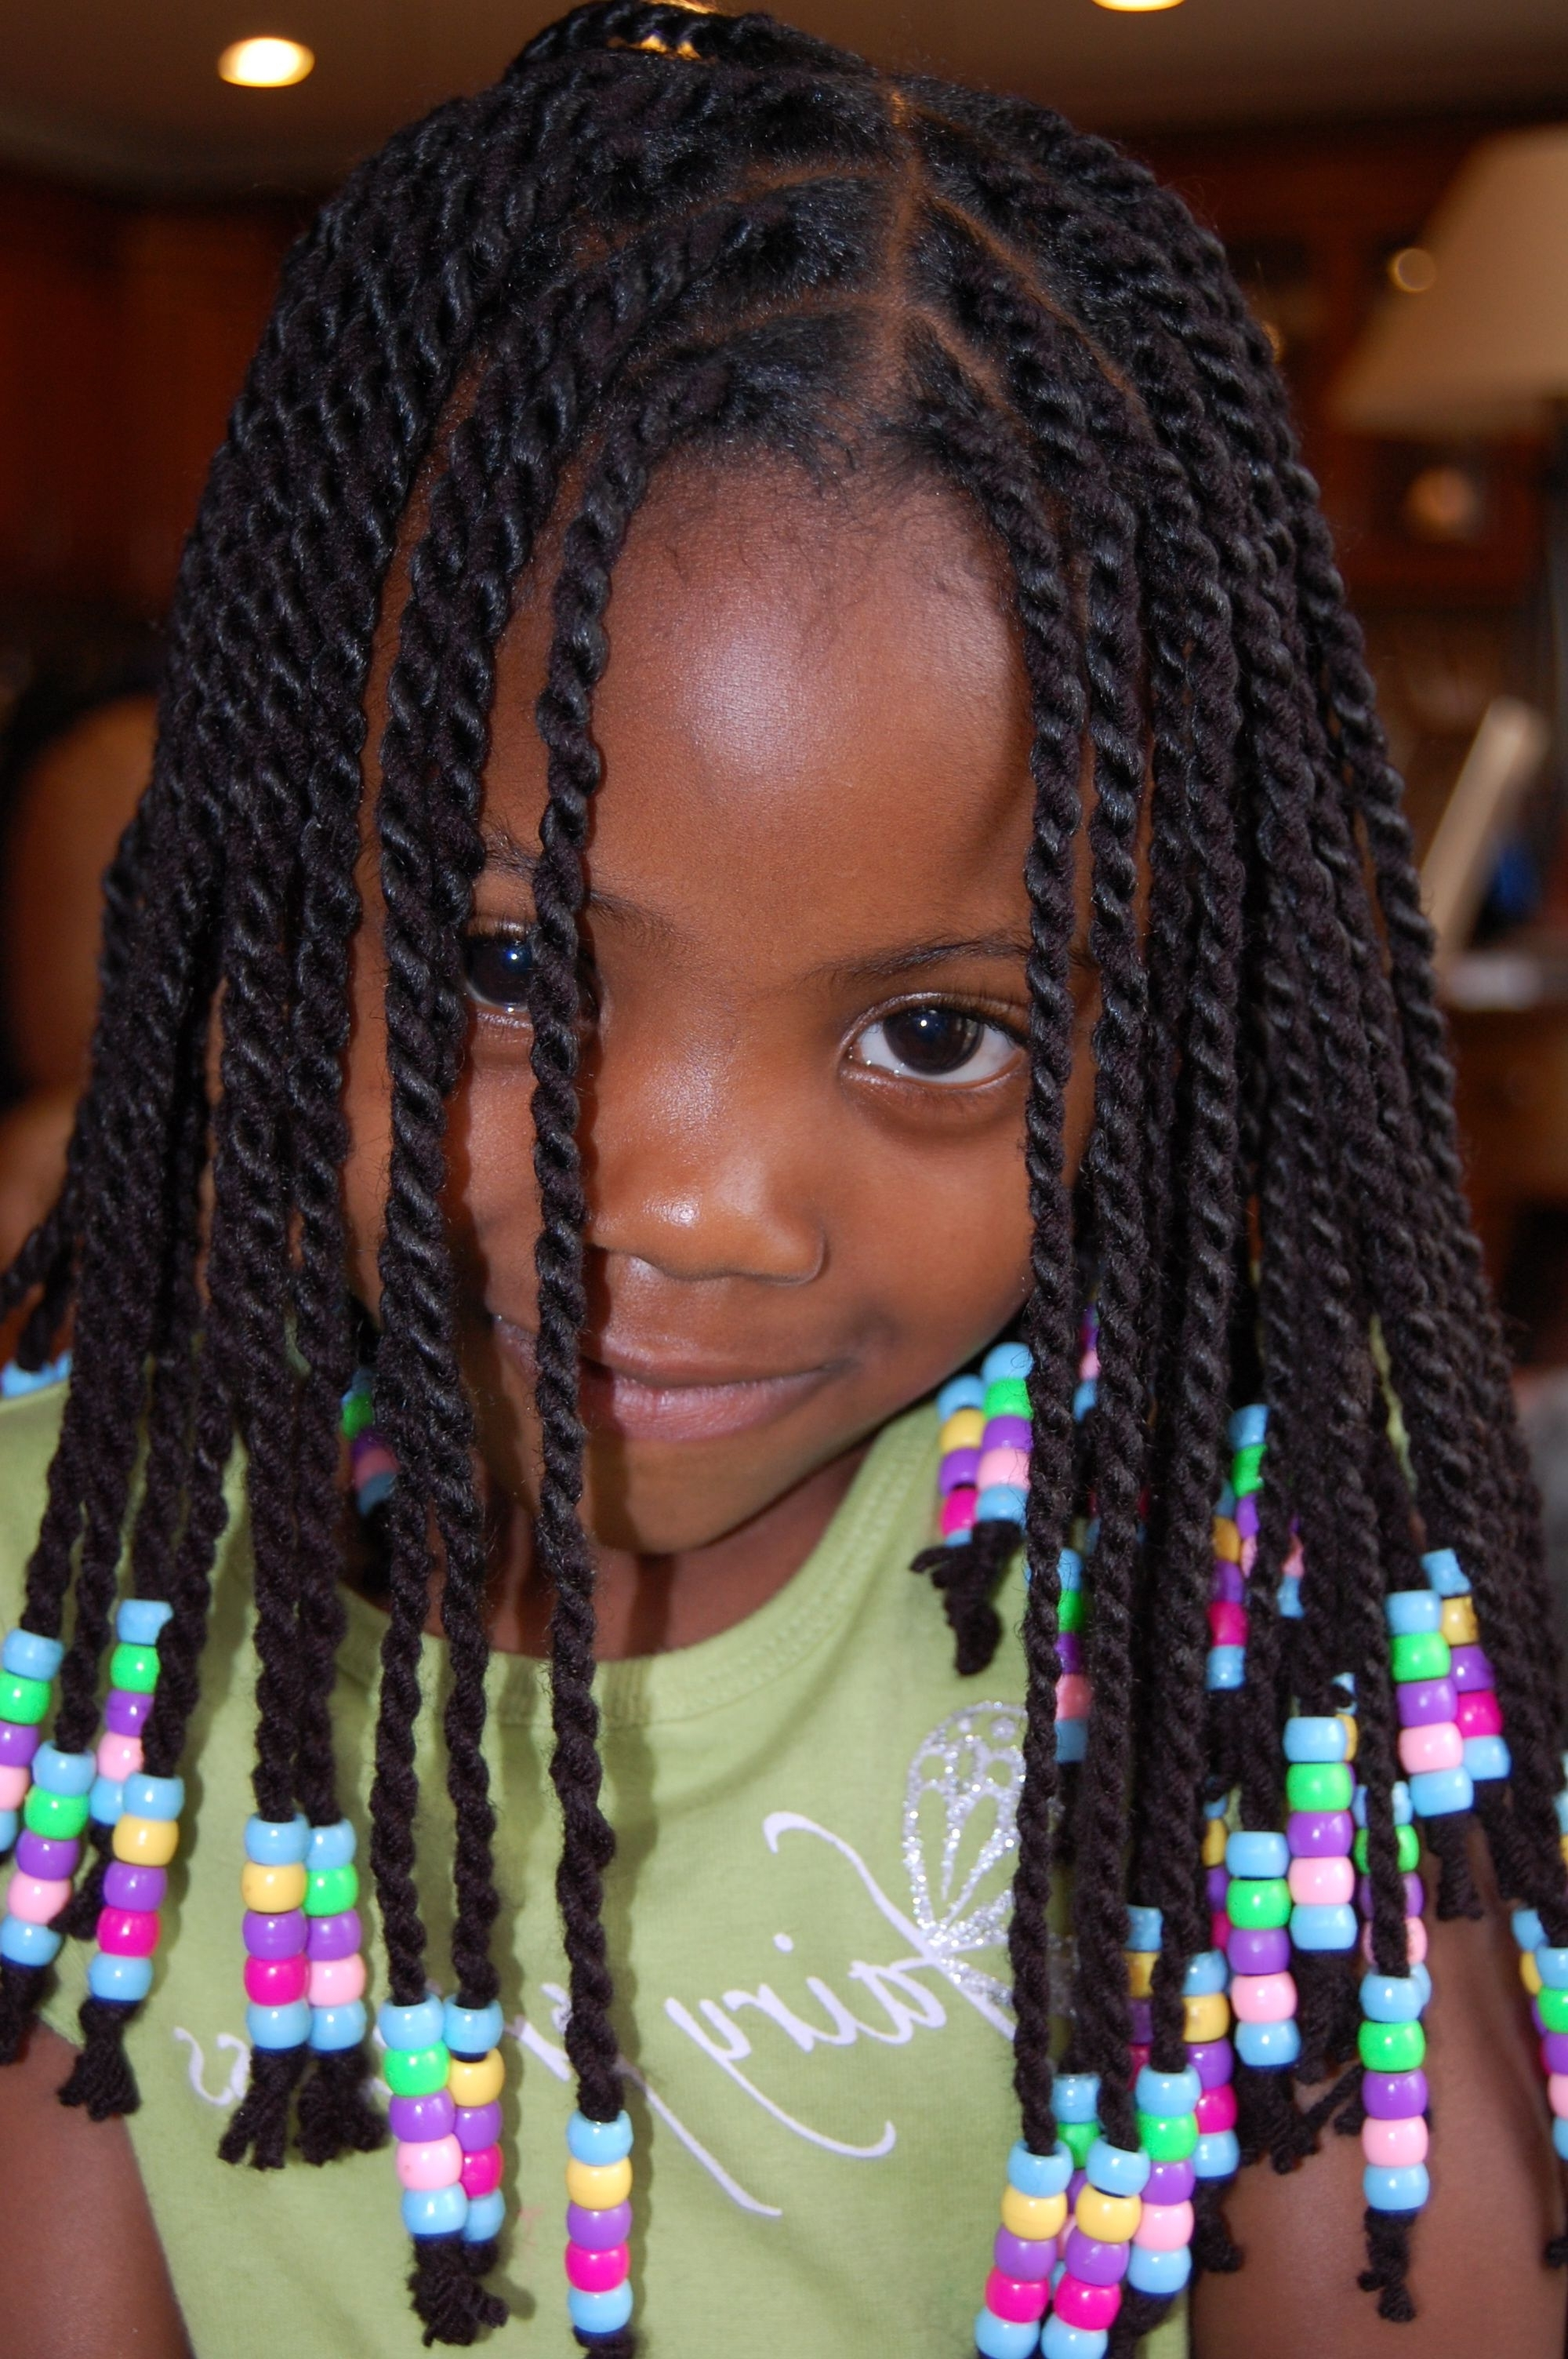 Well Known Braided Yarn Hairstyles Intended For Yarn Twists (protective Hairstyle) (View 6 of 15)